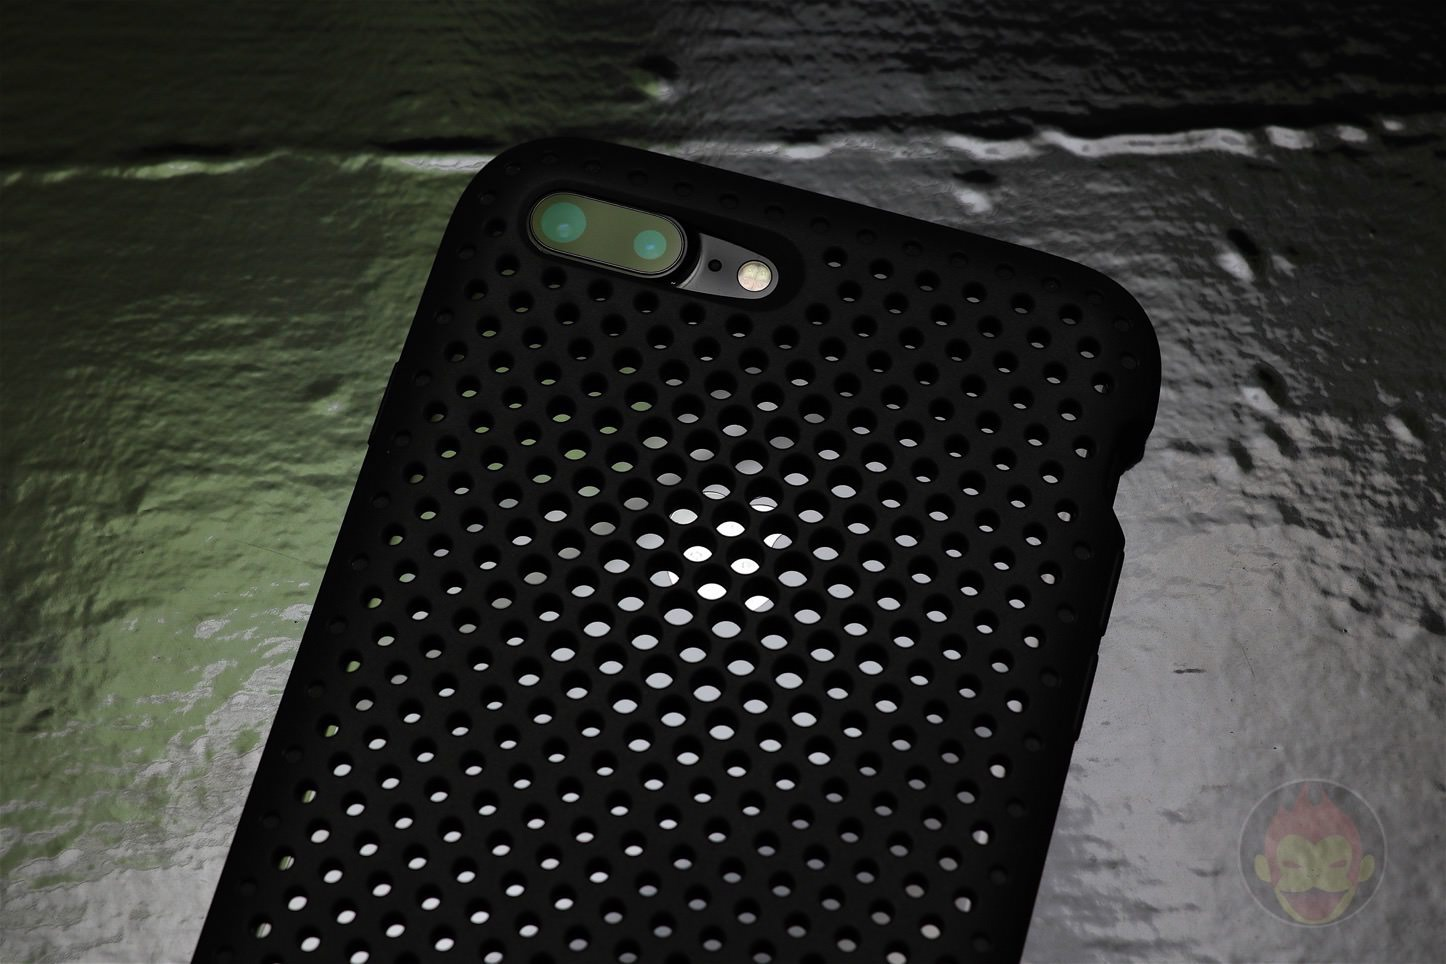 AndMesh-Mesh-Case-for-iPhone-7-Plus-09.jpg